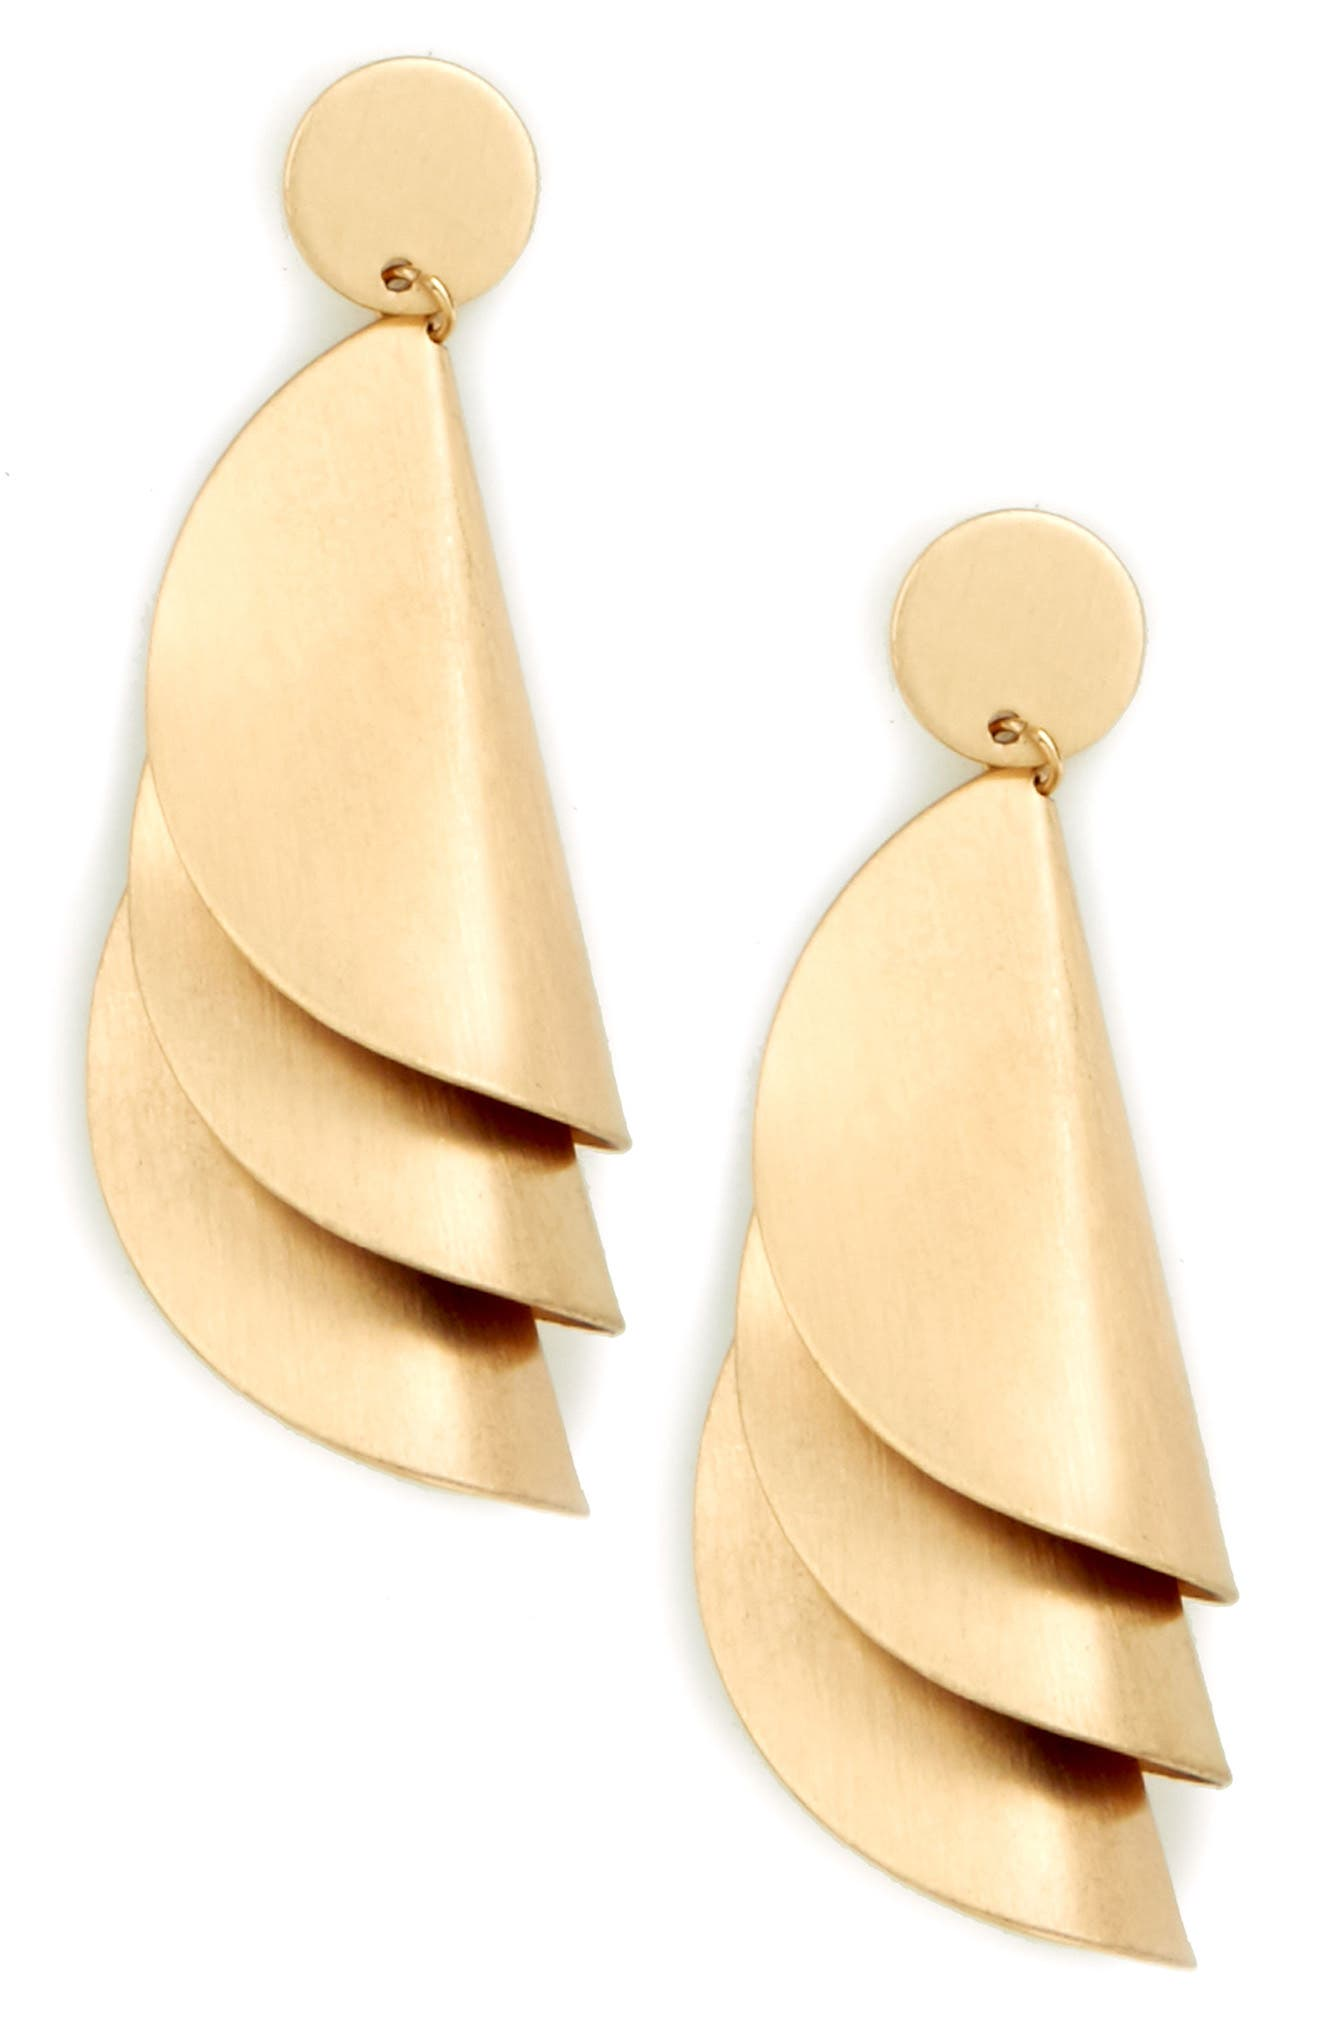 Fossil Cove Statement Earrings,                         Main,                         color, Gold